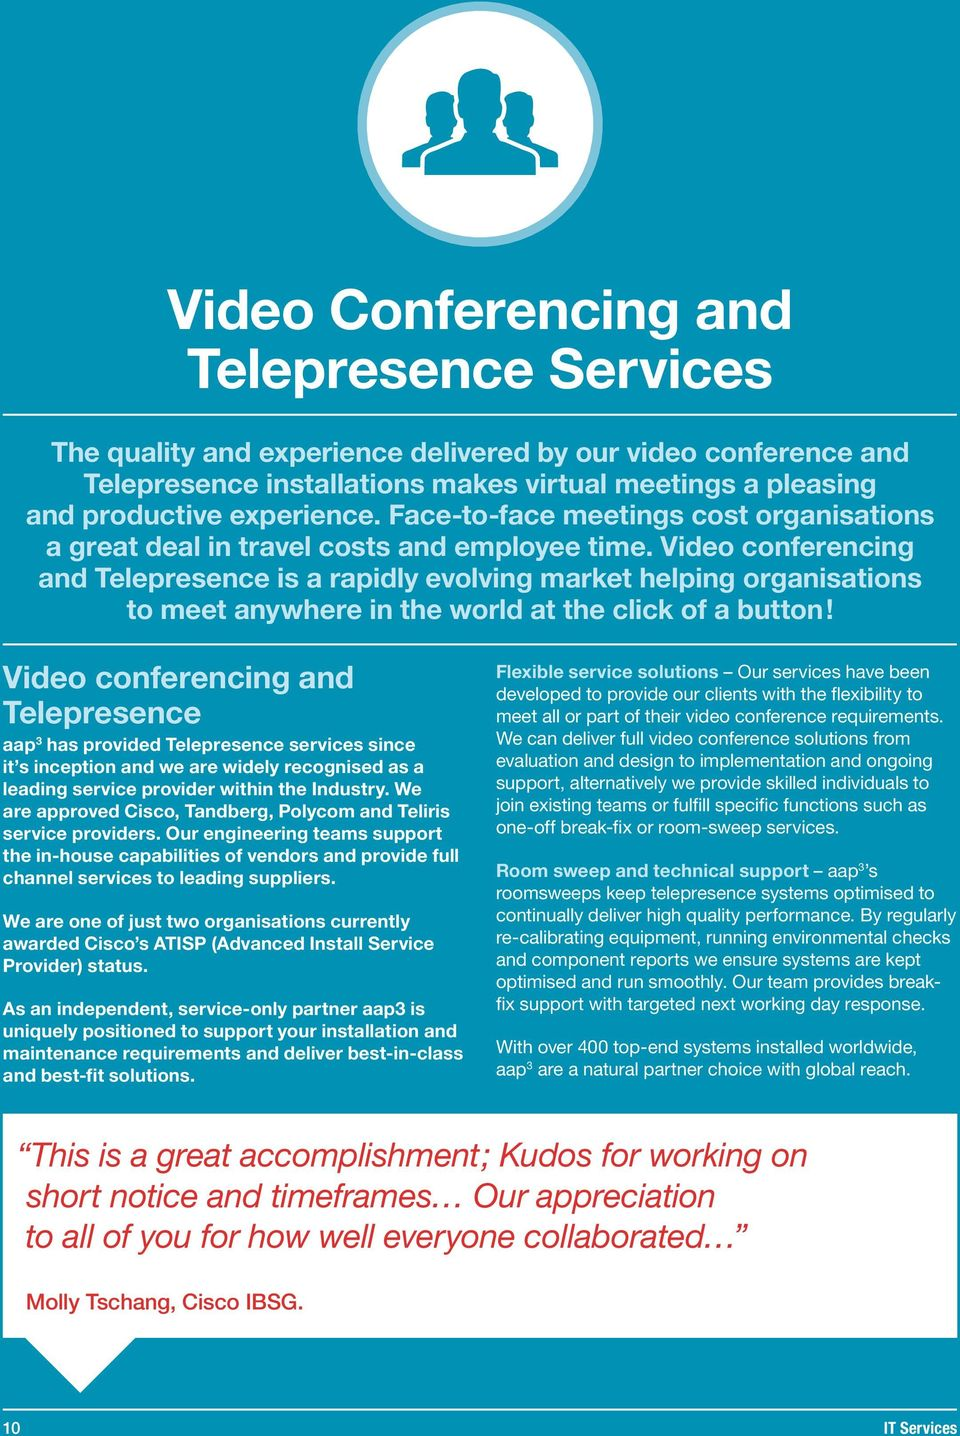 Video conferencing and Telepresence is a rapidly evolving market helping organisations to meet anywhere in the world at the click of a button!